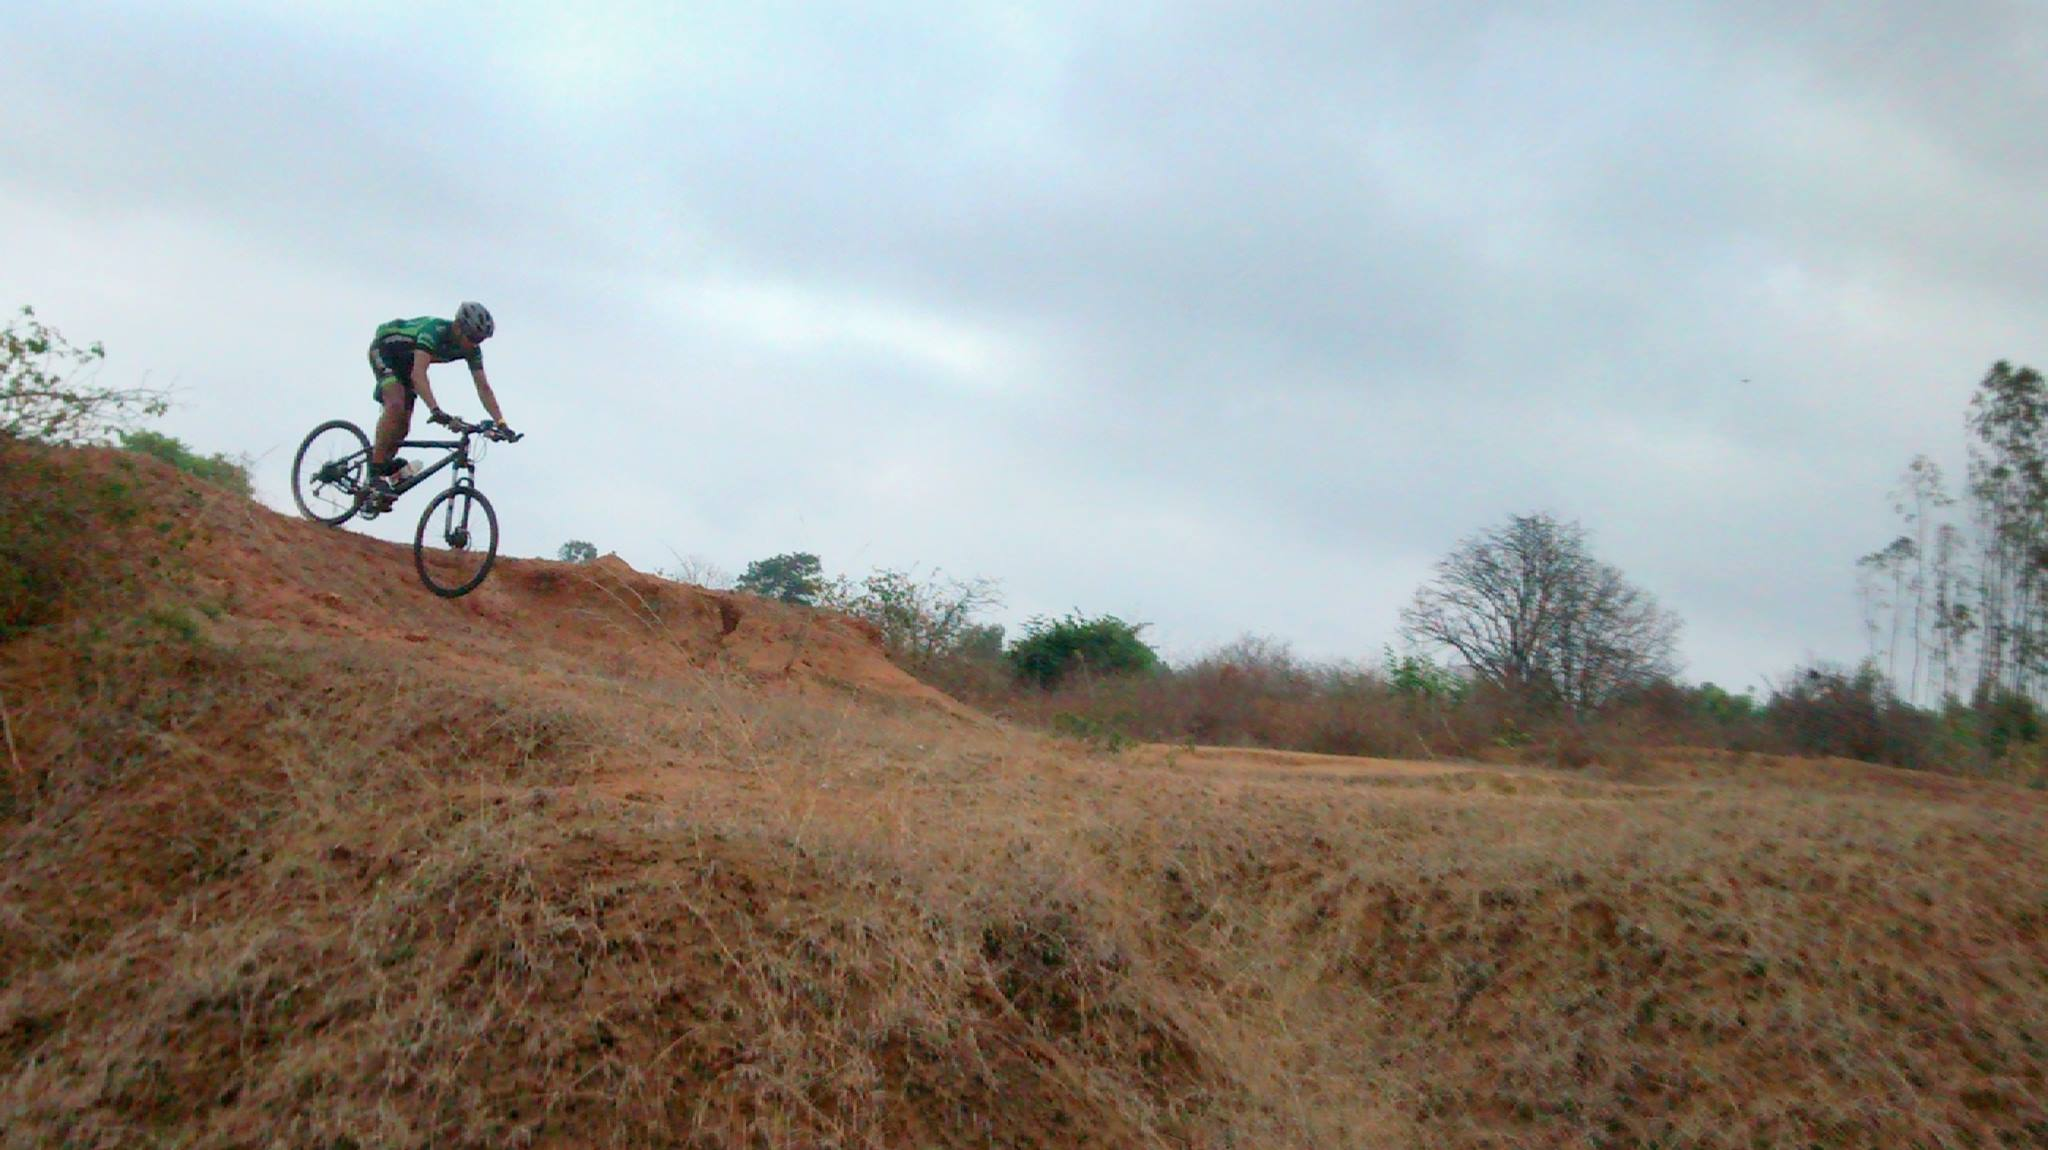 Biju Kunnappada on his gravel and crosscountry cycling / bike ride in India